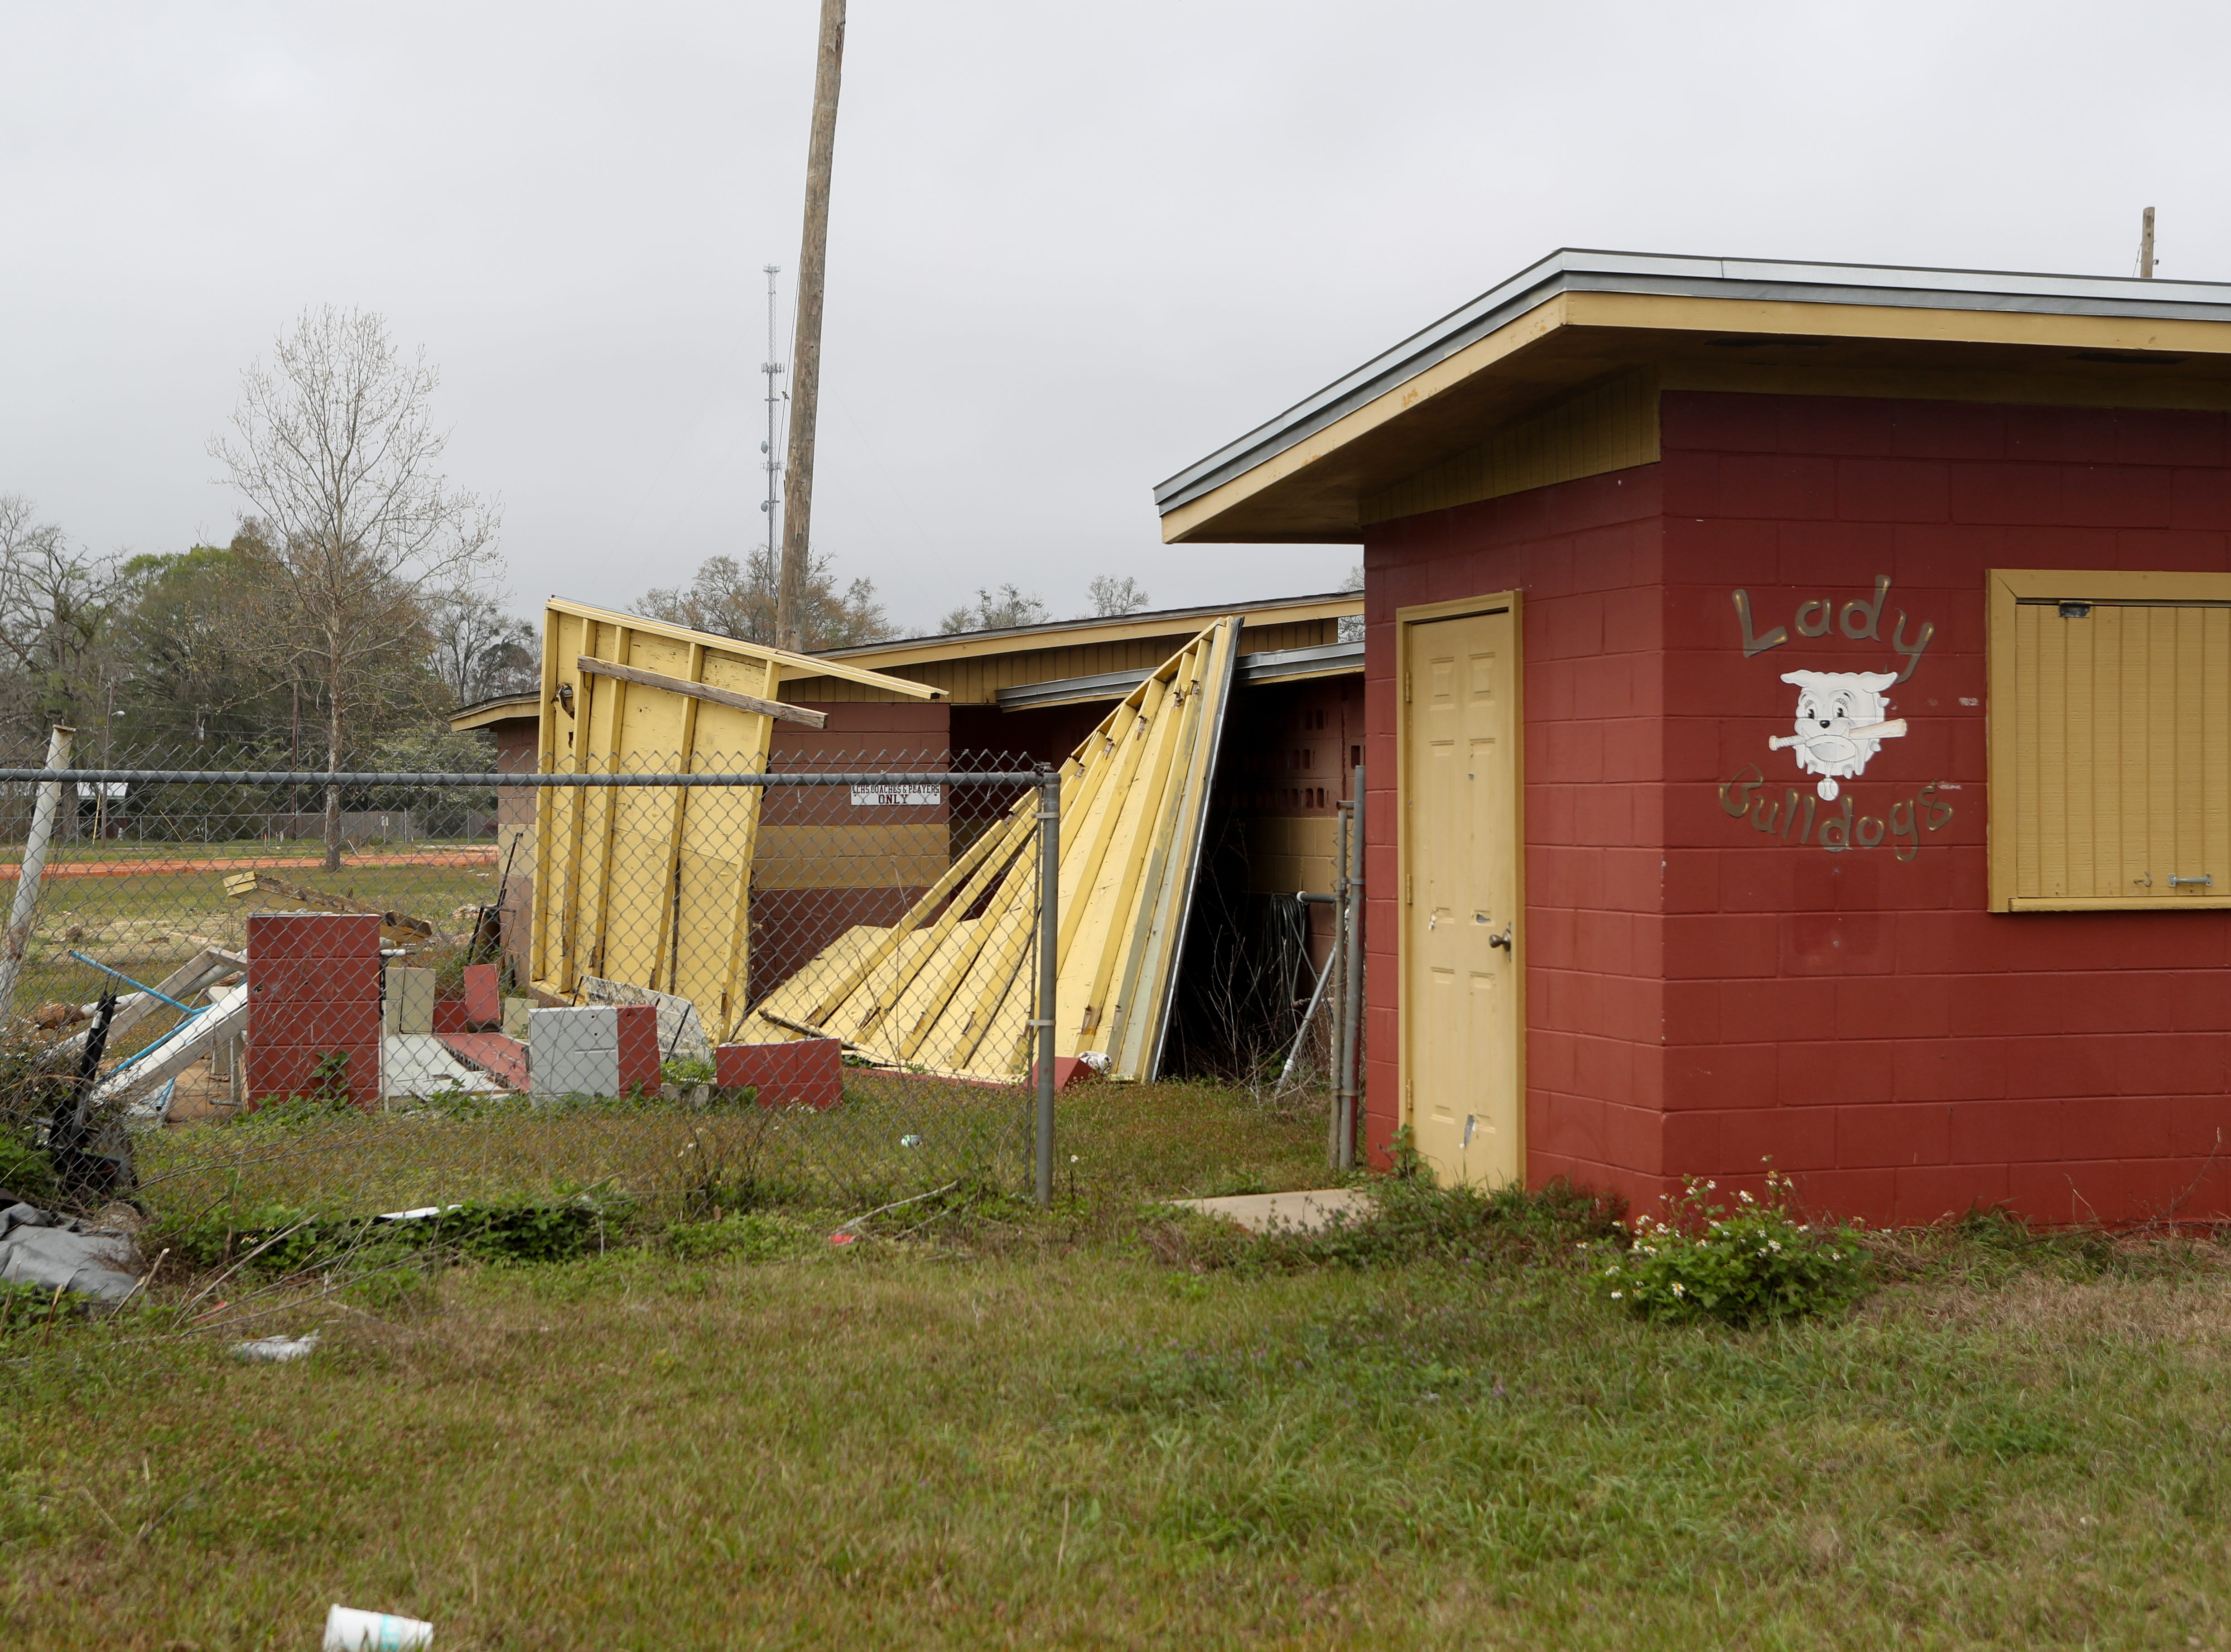 The Liberty County High School athletic field complex was heavily damaged by Hurricane Michael in October. Head Baseball Coach Corey Crum and his wife Shana Crum were killed Sunday while working at the field to repair damages.